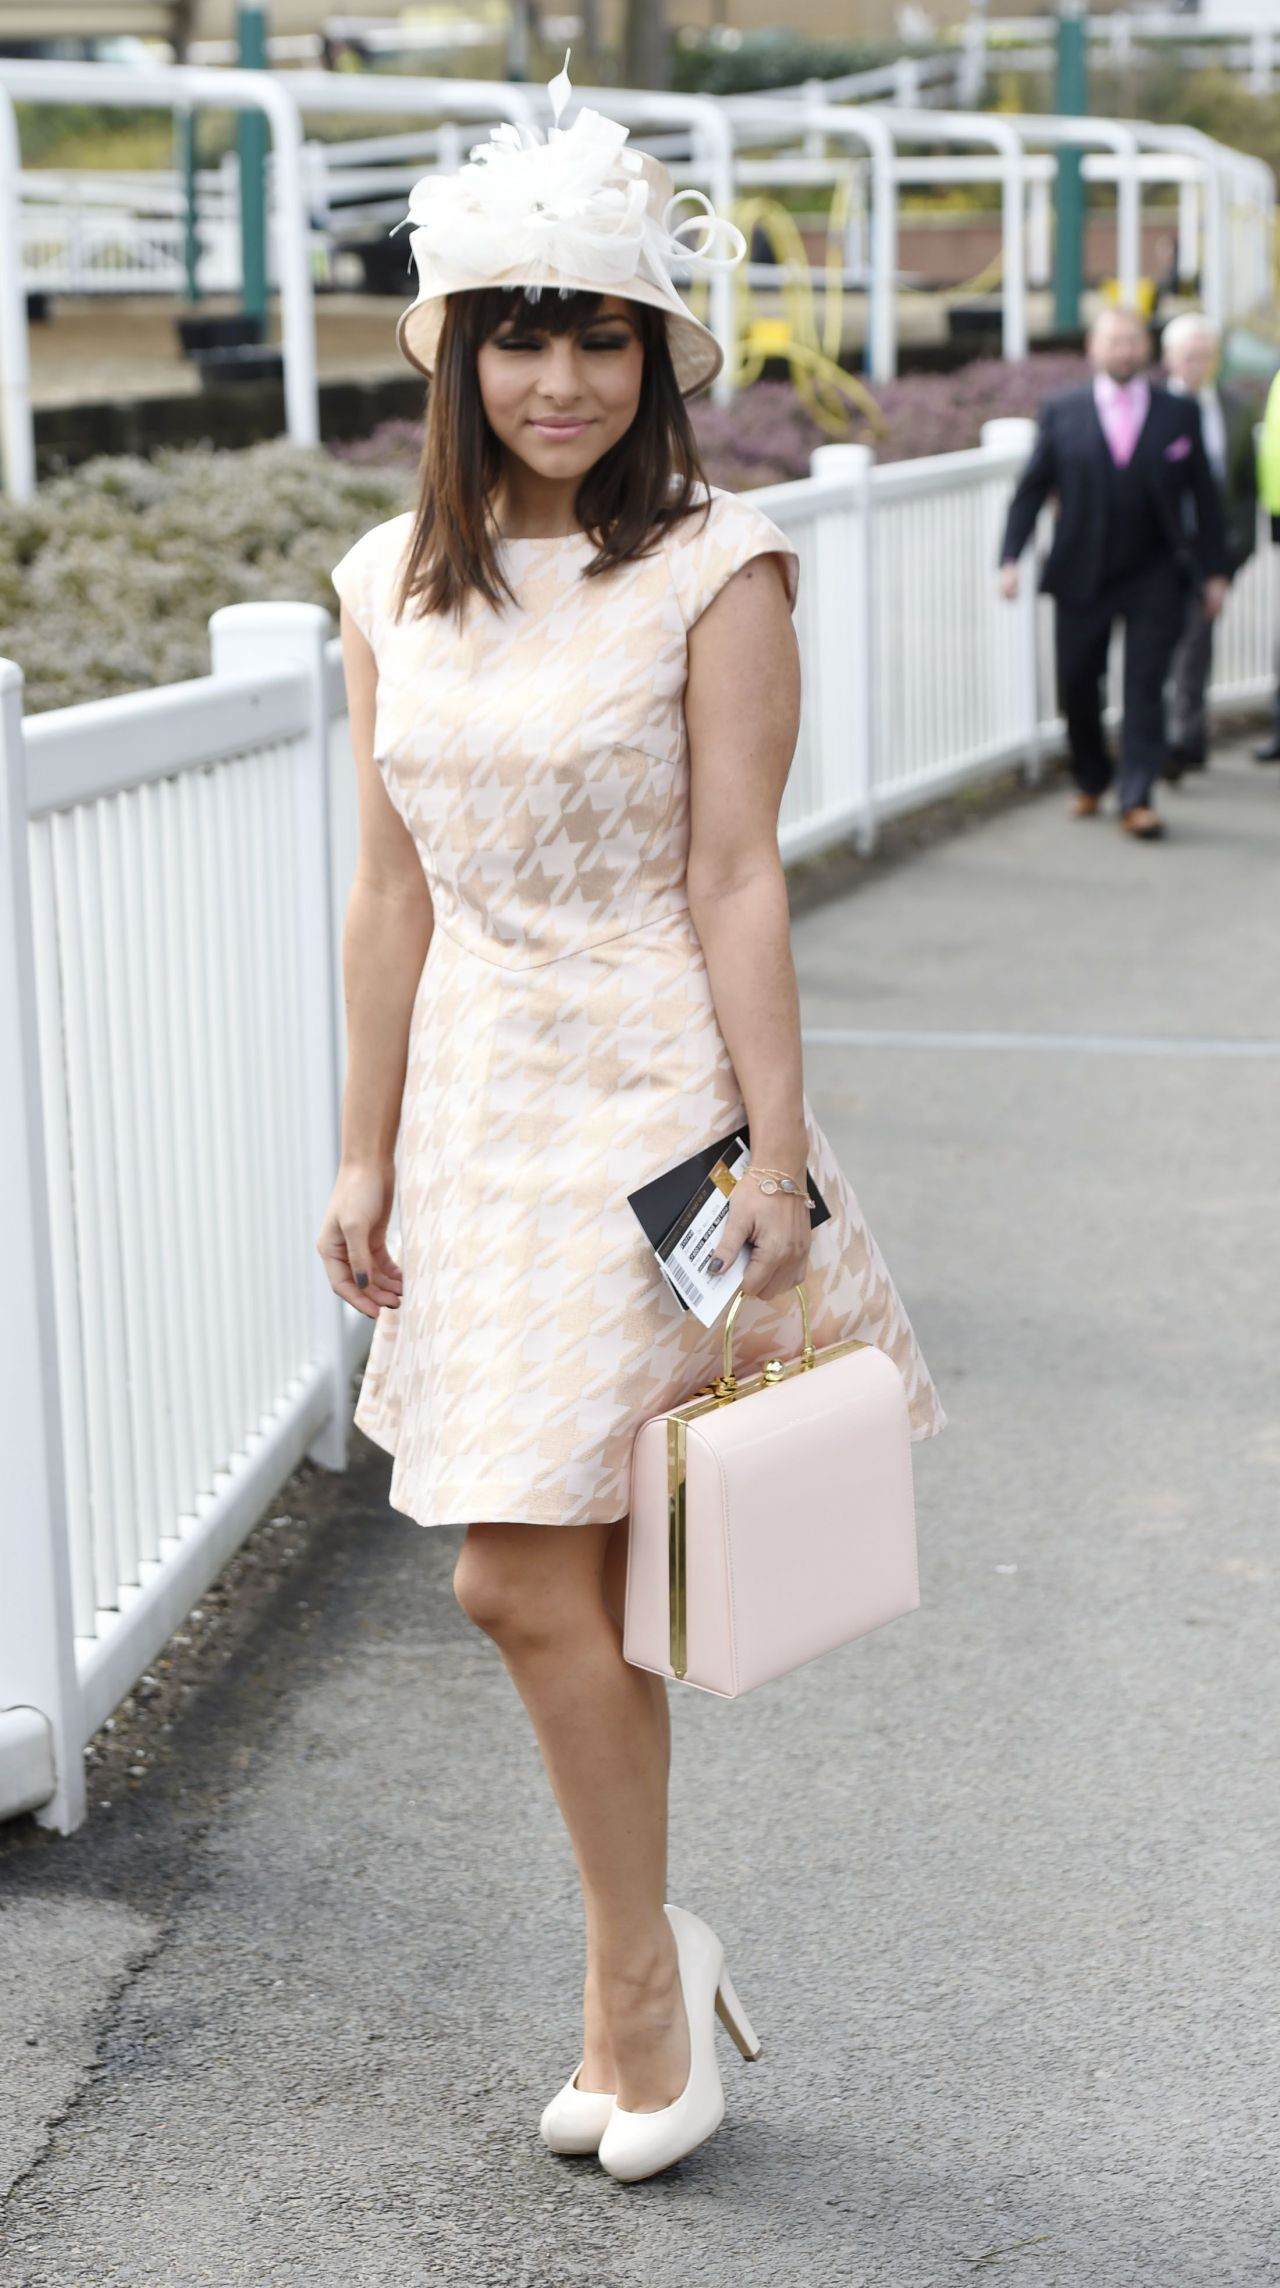 Roxanne Pallett Aintree Racecourse In Aintree Merseyside England 4 9 2016